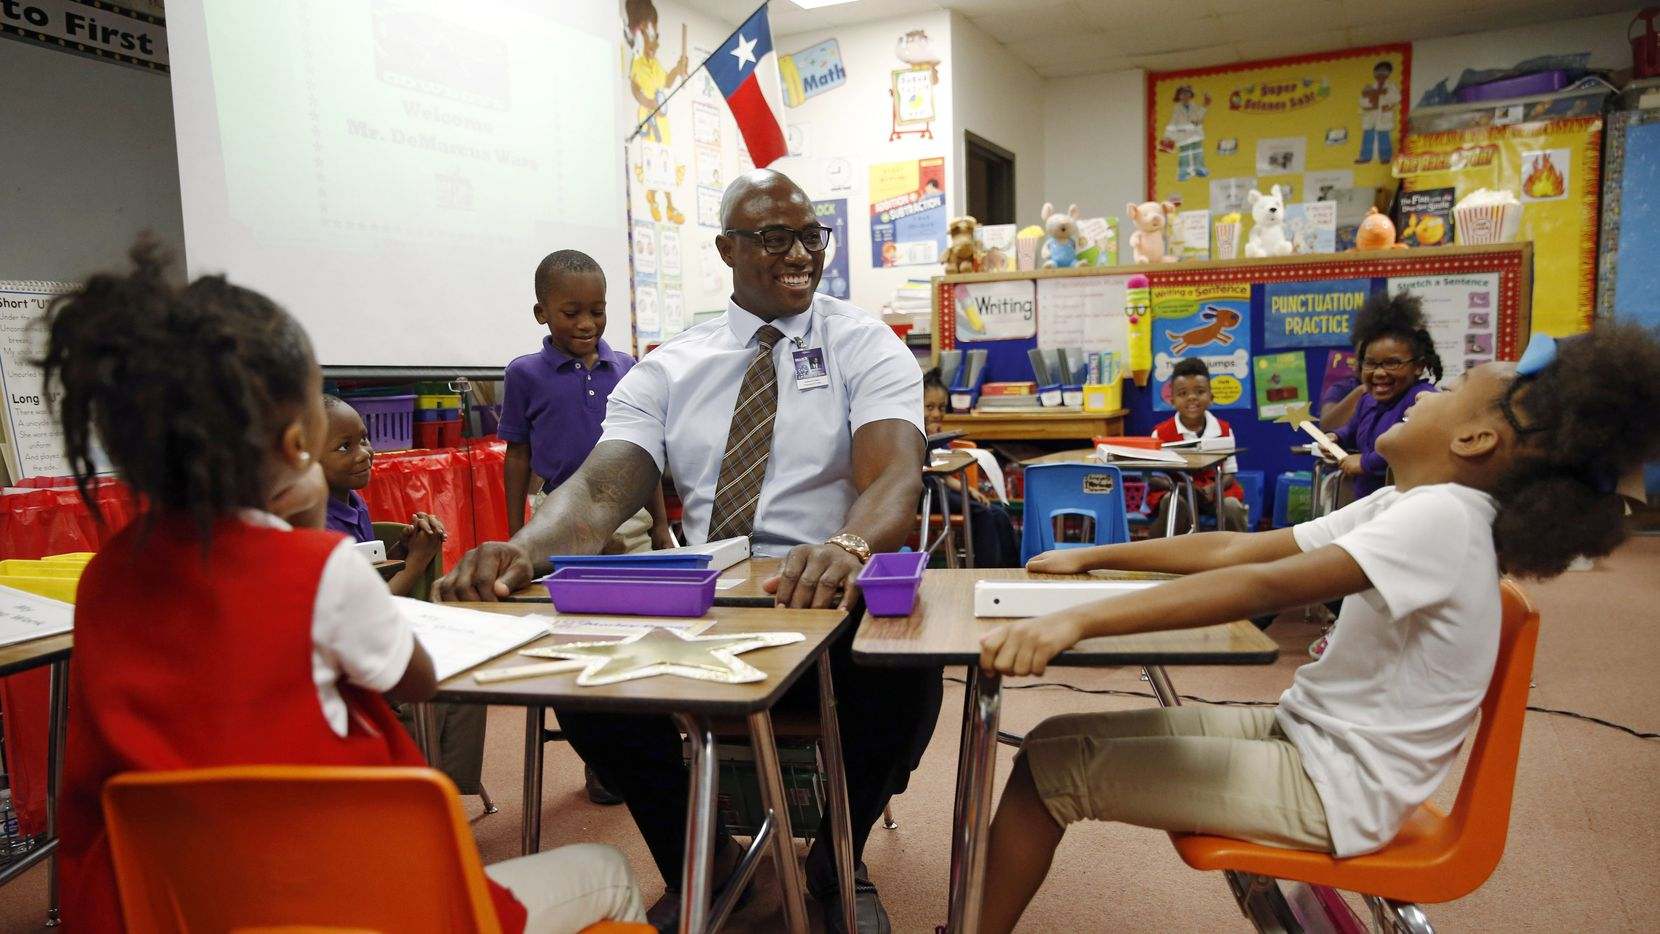 Former Dallas Cowboys player DeMarcus Ware squeezes into the desk belonging to Dewaylin Daniels' (standing to Ware's right) as Marley Dugas (left, seated in red) and Kaylen Tyson (right) share a laugh in a first-grade classroom at J.P. Starks Math, Science and Technology Elementary Vanguard.